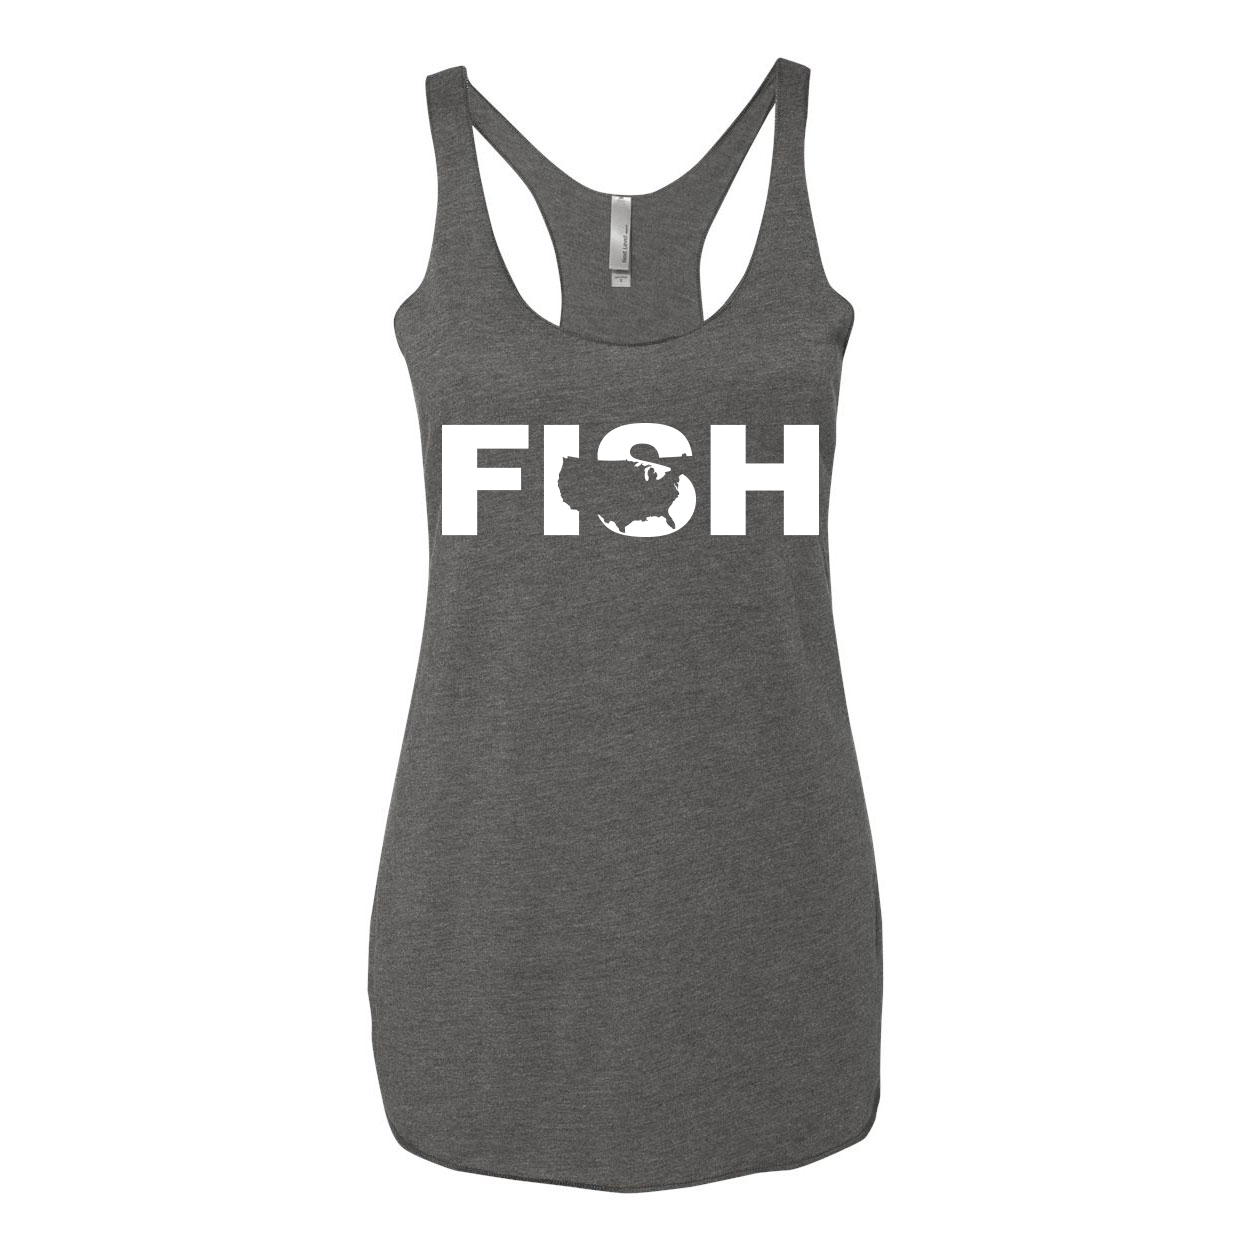 Fish United States Classic Women's Ultra Thin Tank Top Premium Heather Gray (White Logo)